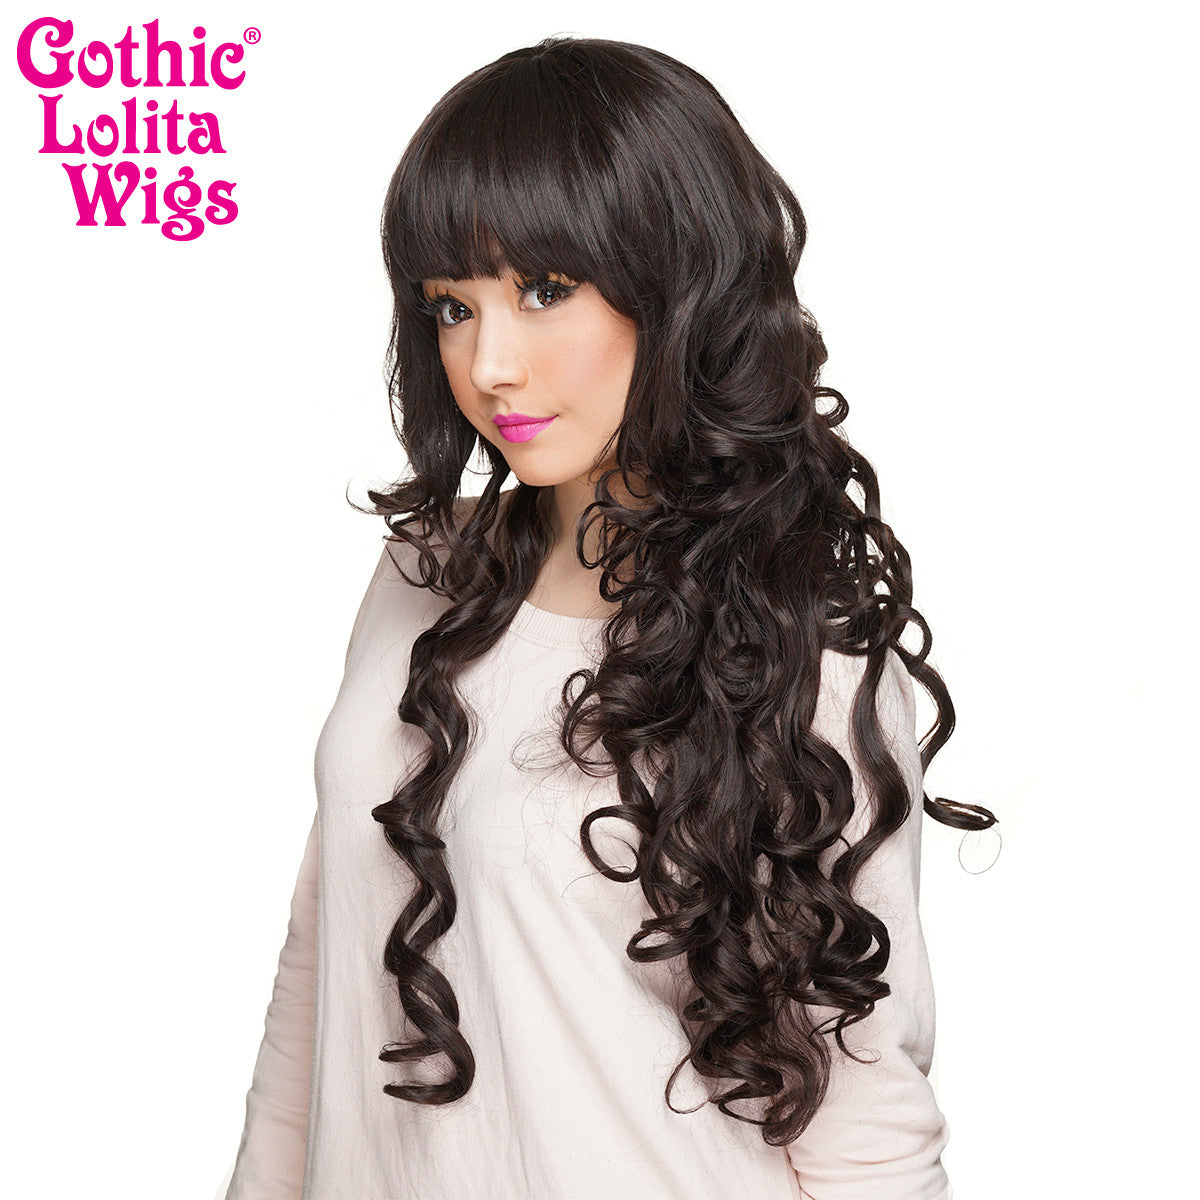 Gothic Lolita Wigs® <br> Duchess Elodie™ Collection - Dark Brown Mix -00055